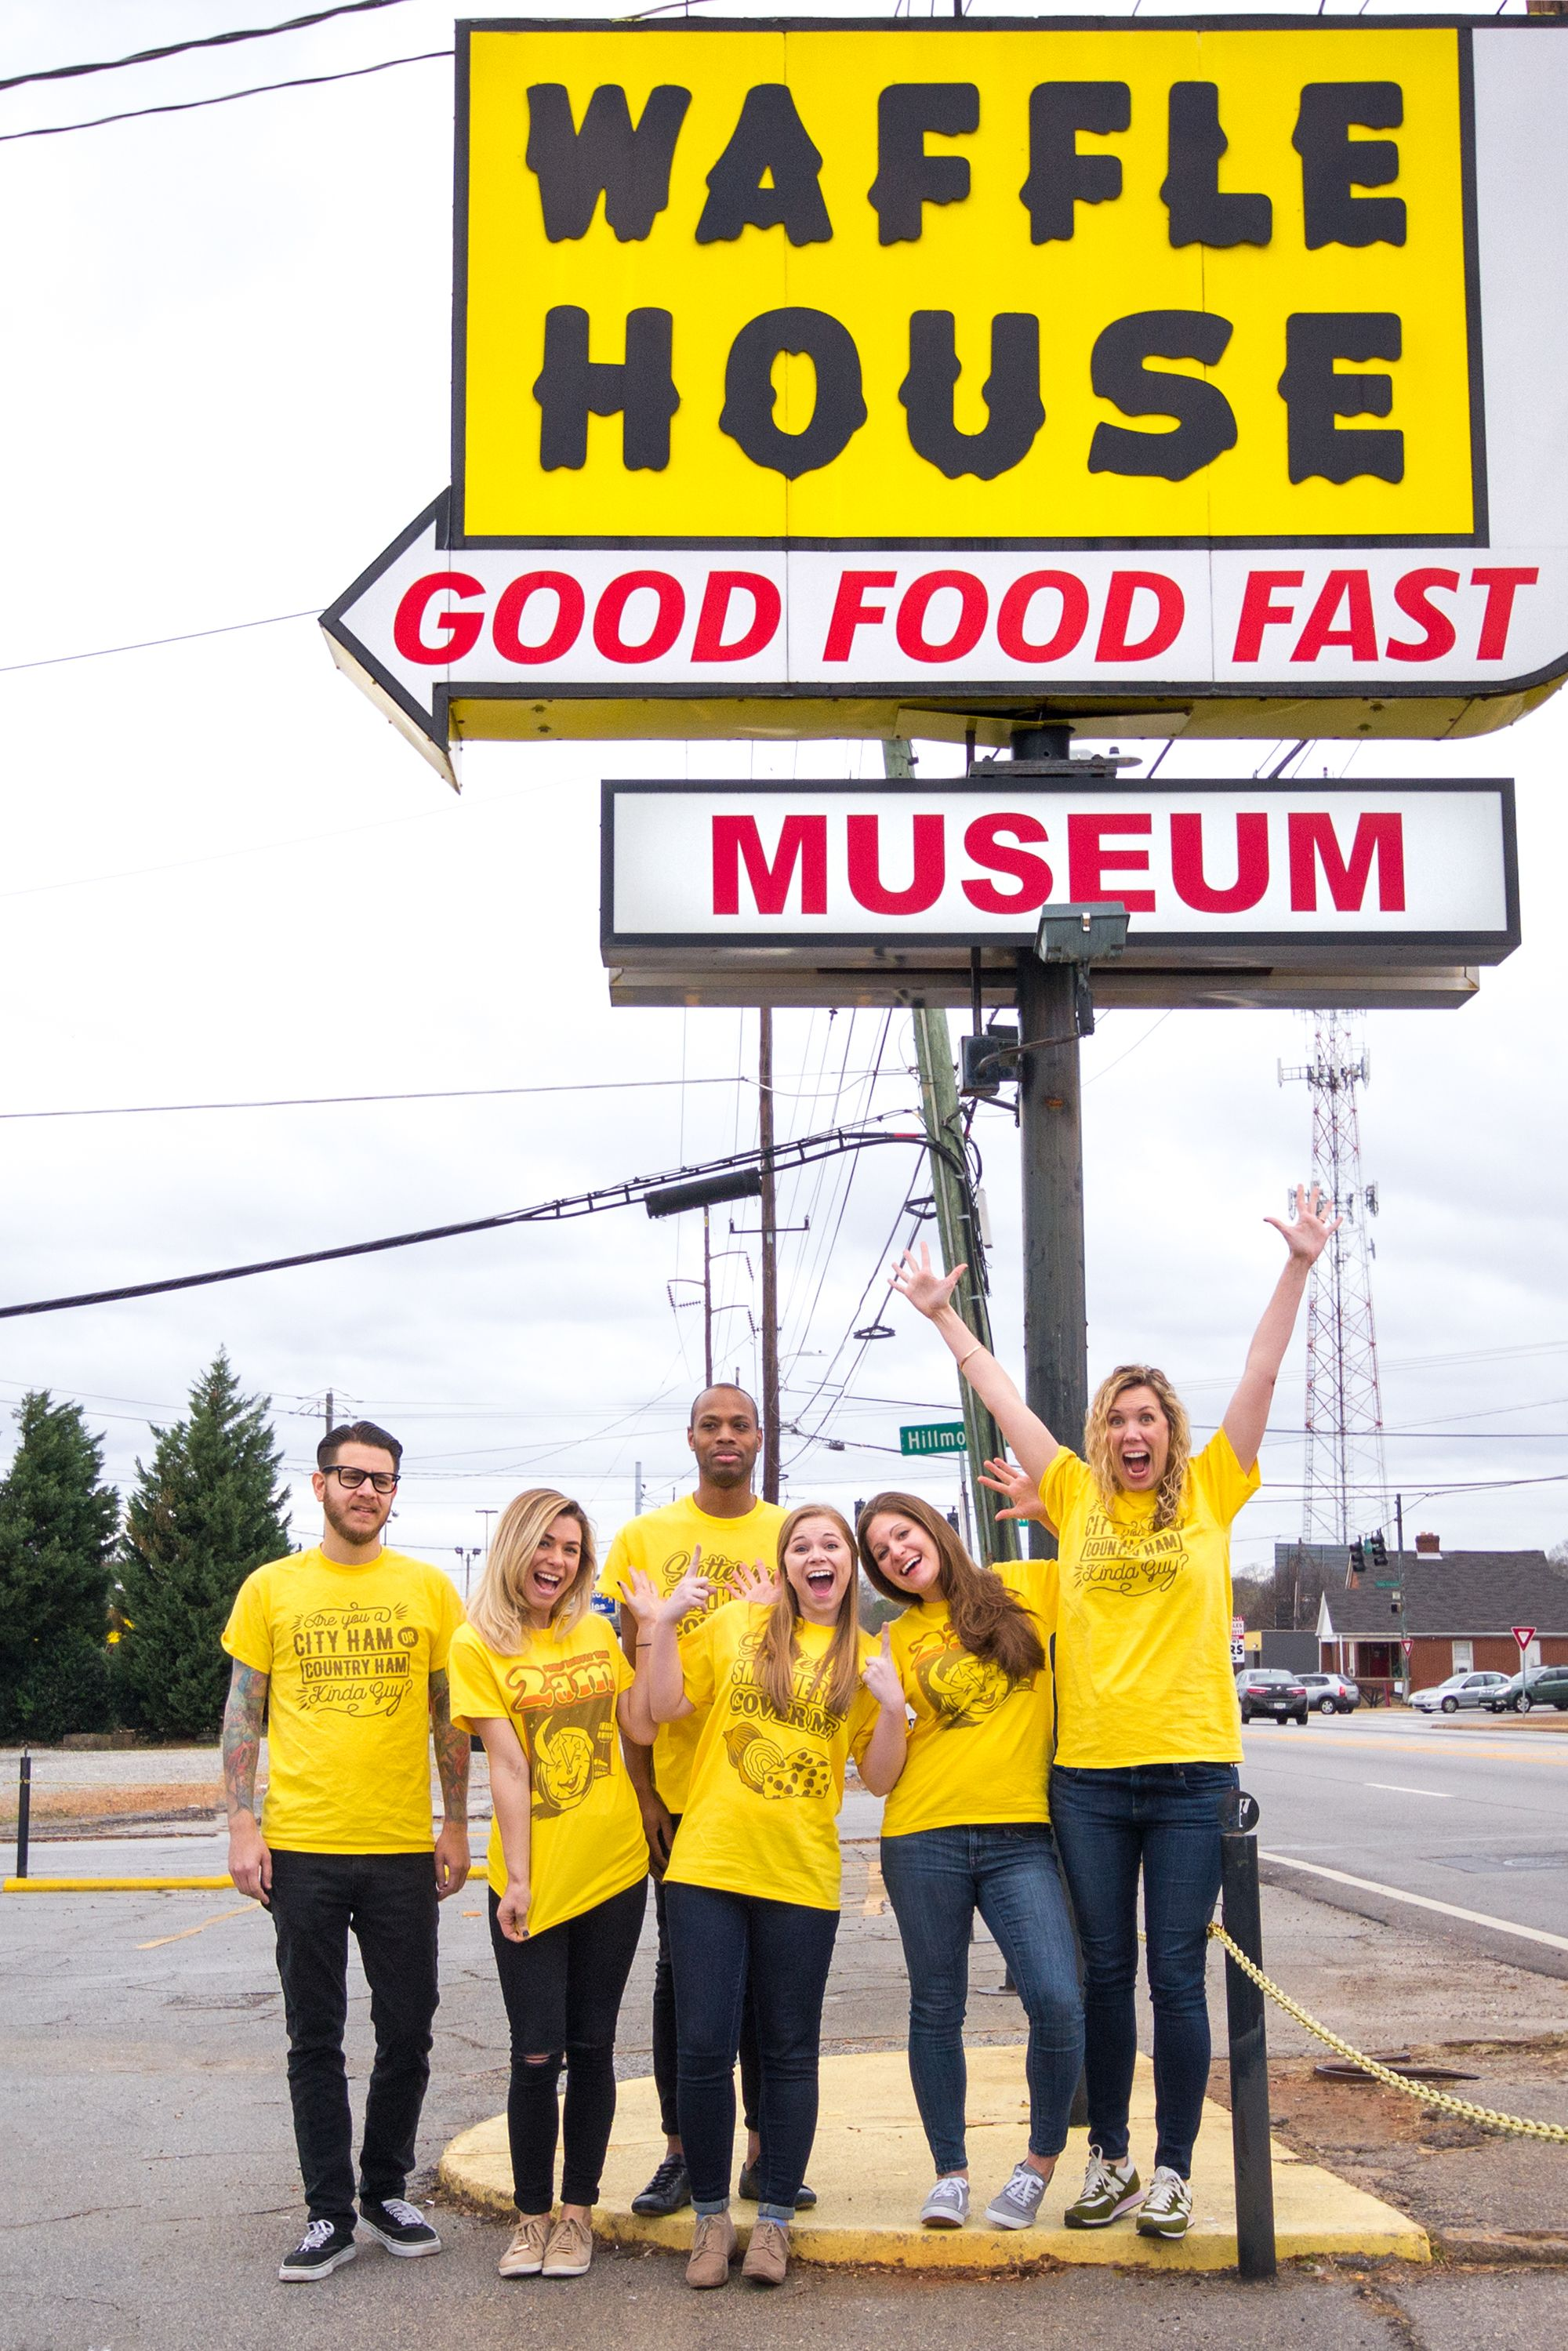 The UberPrints crew posing in front of the Waffle House sign.